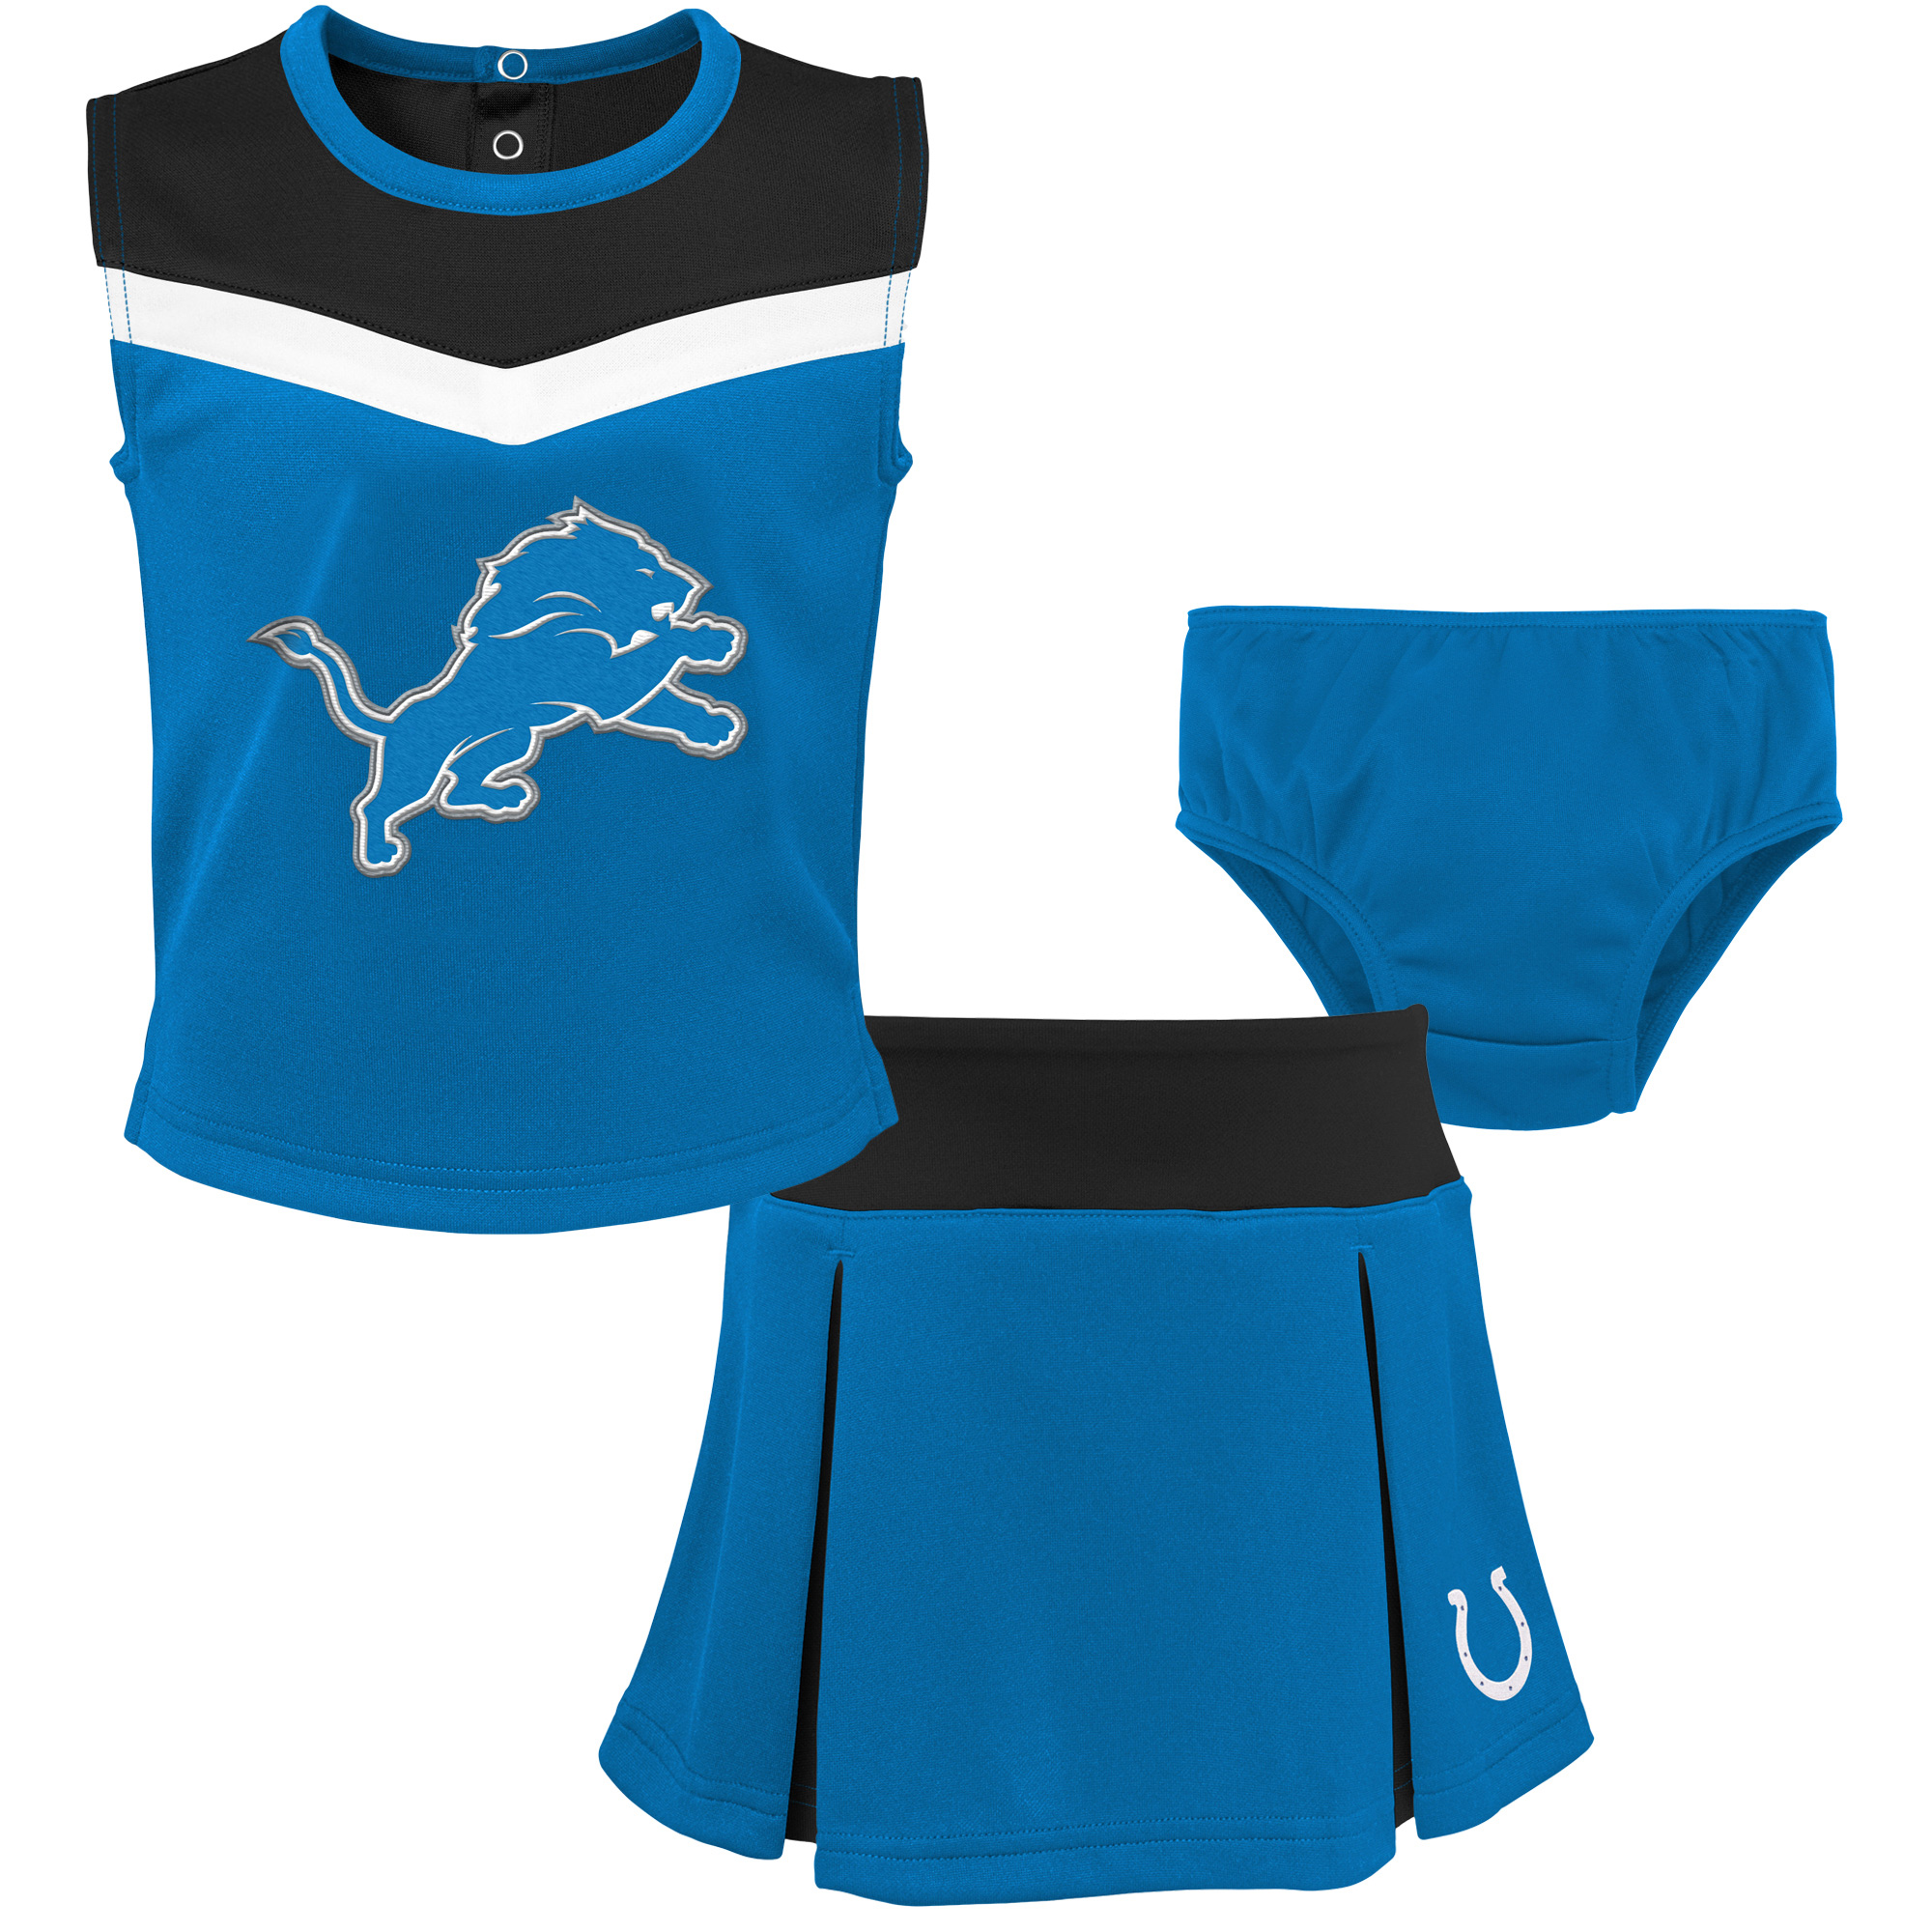 c8de3988 Detroit Lions Girls Toddler Two-Piece Spirit Cheerleader Set with Bloomers  - Blue/Black